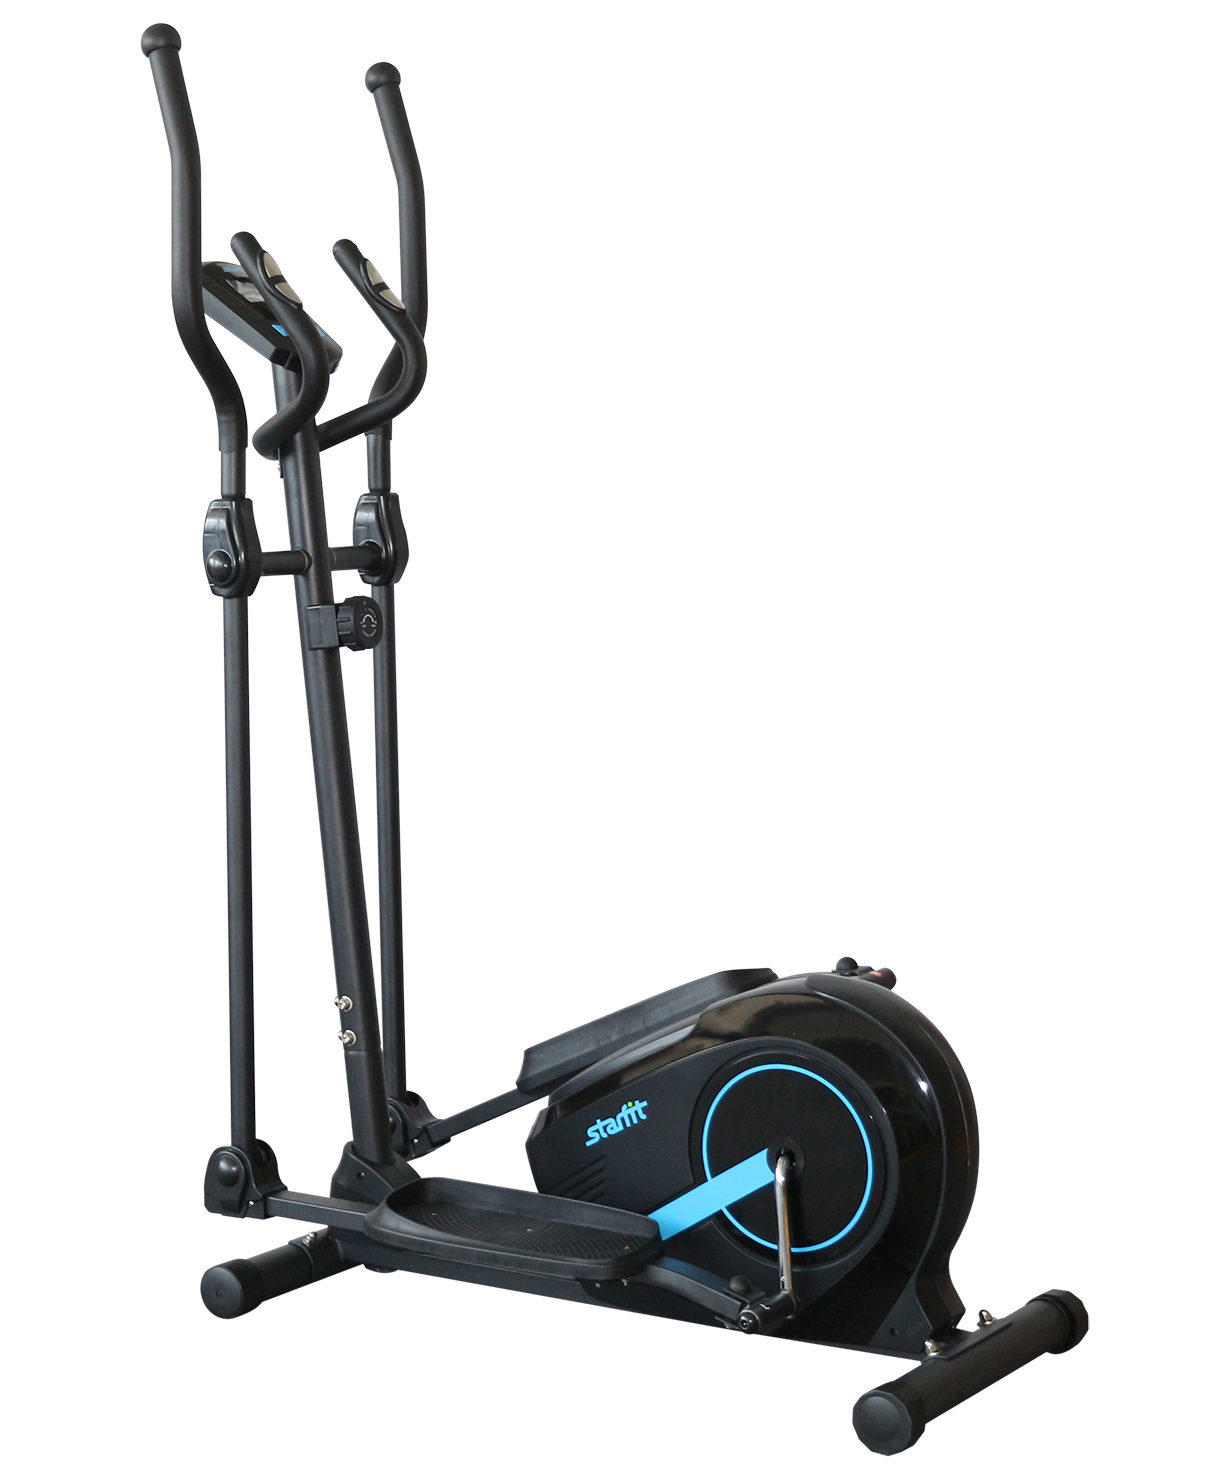 uploads gym equipment gym equipment PNG25 4